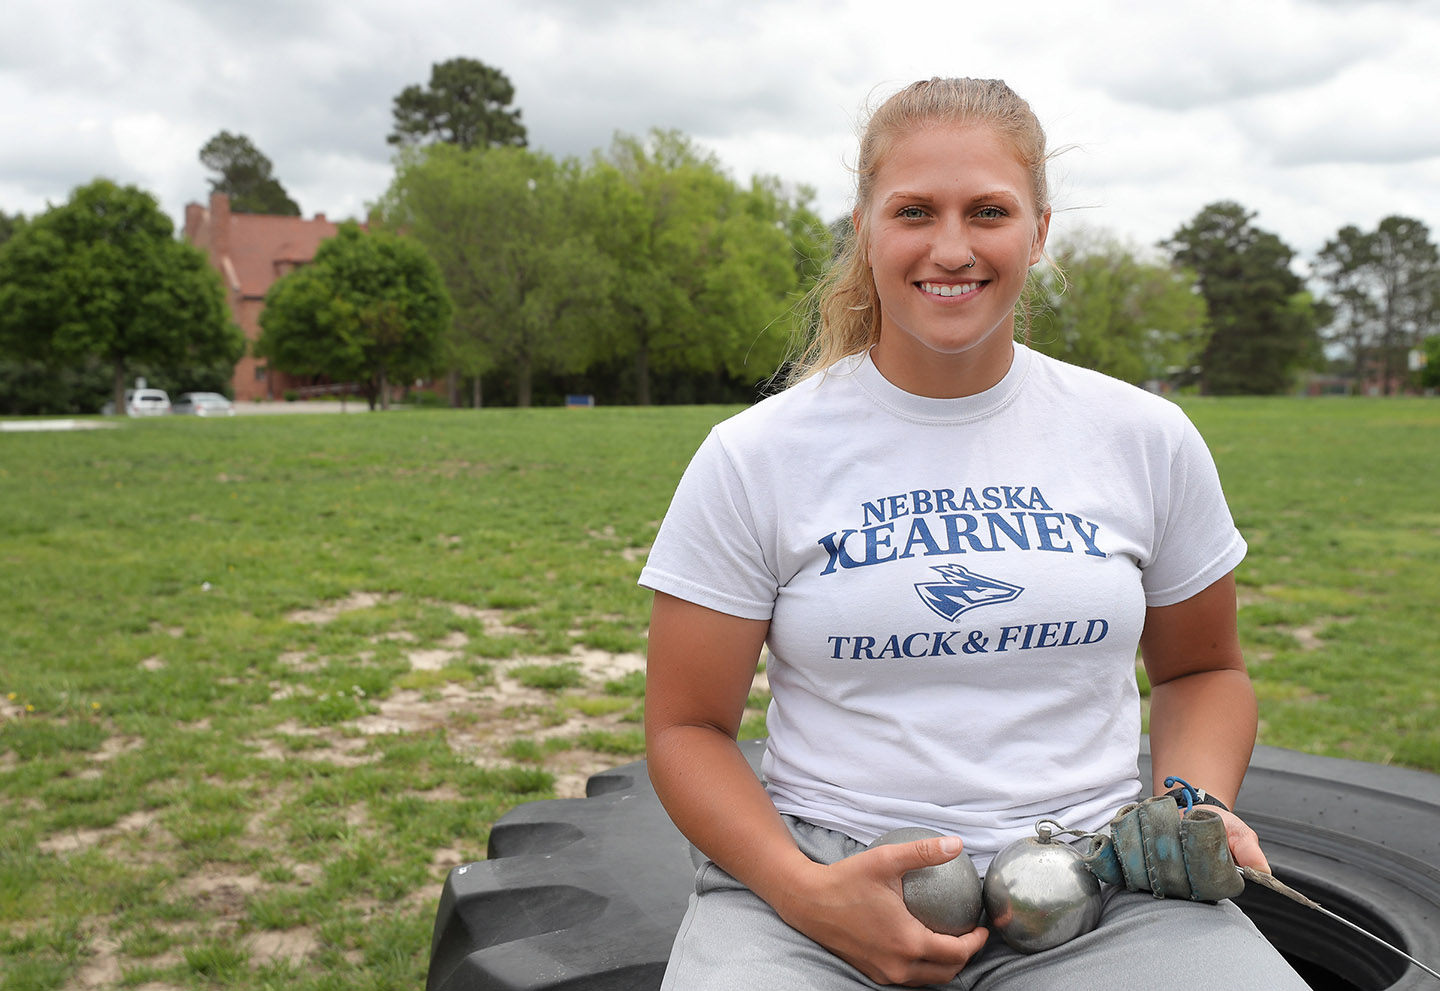 Tiara Schmidt, a recent UNK graduate, qualified for the NCAA Division II Outdoor Track and Field Championships in both the hammer throw and shot put. The three-day event begins Thursday at Grand Valley State University in Allendale, Michigan.